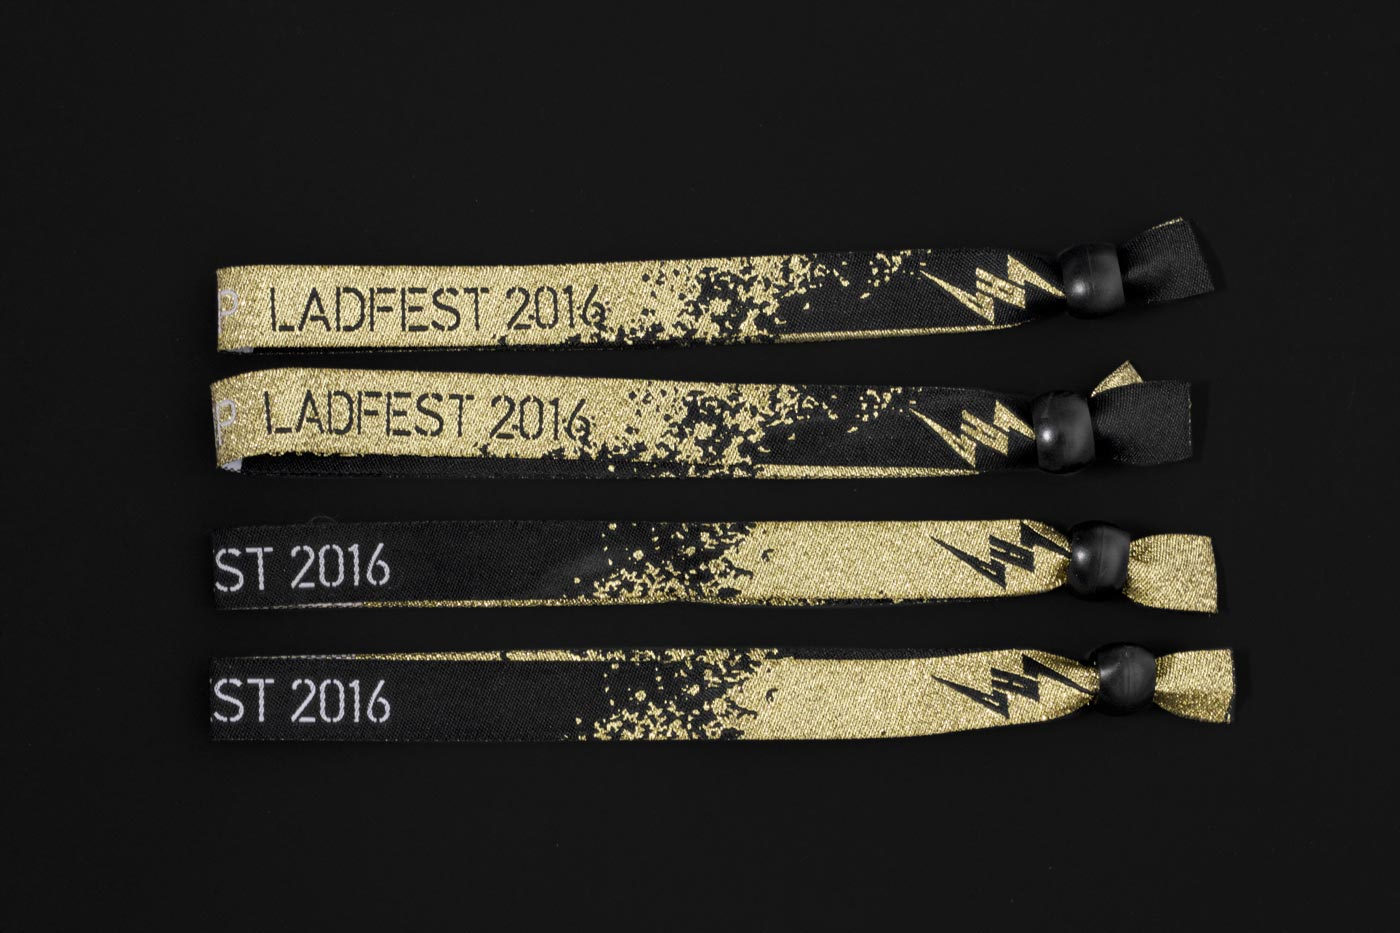 Brand identity and wristbands for Latin American Design Festival 2016 by IS Creative Studio